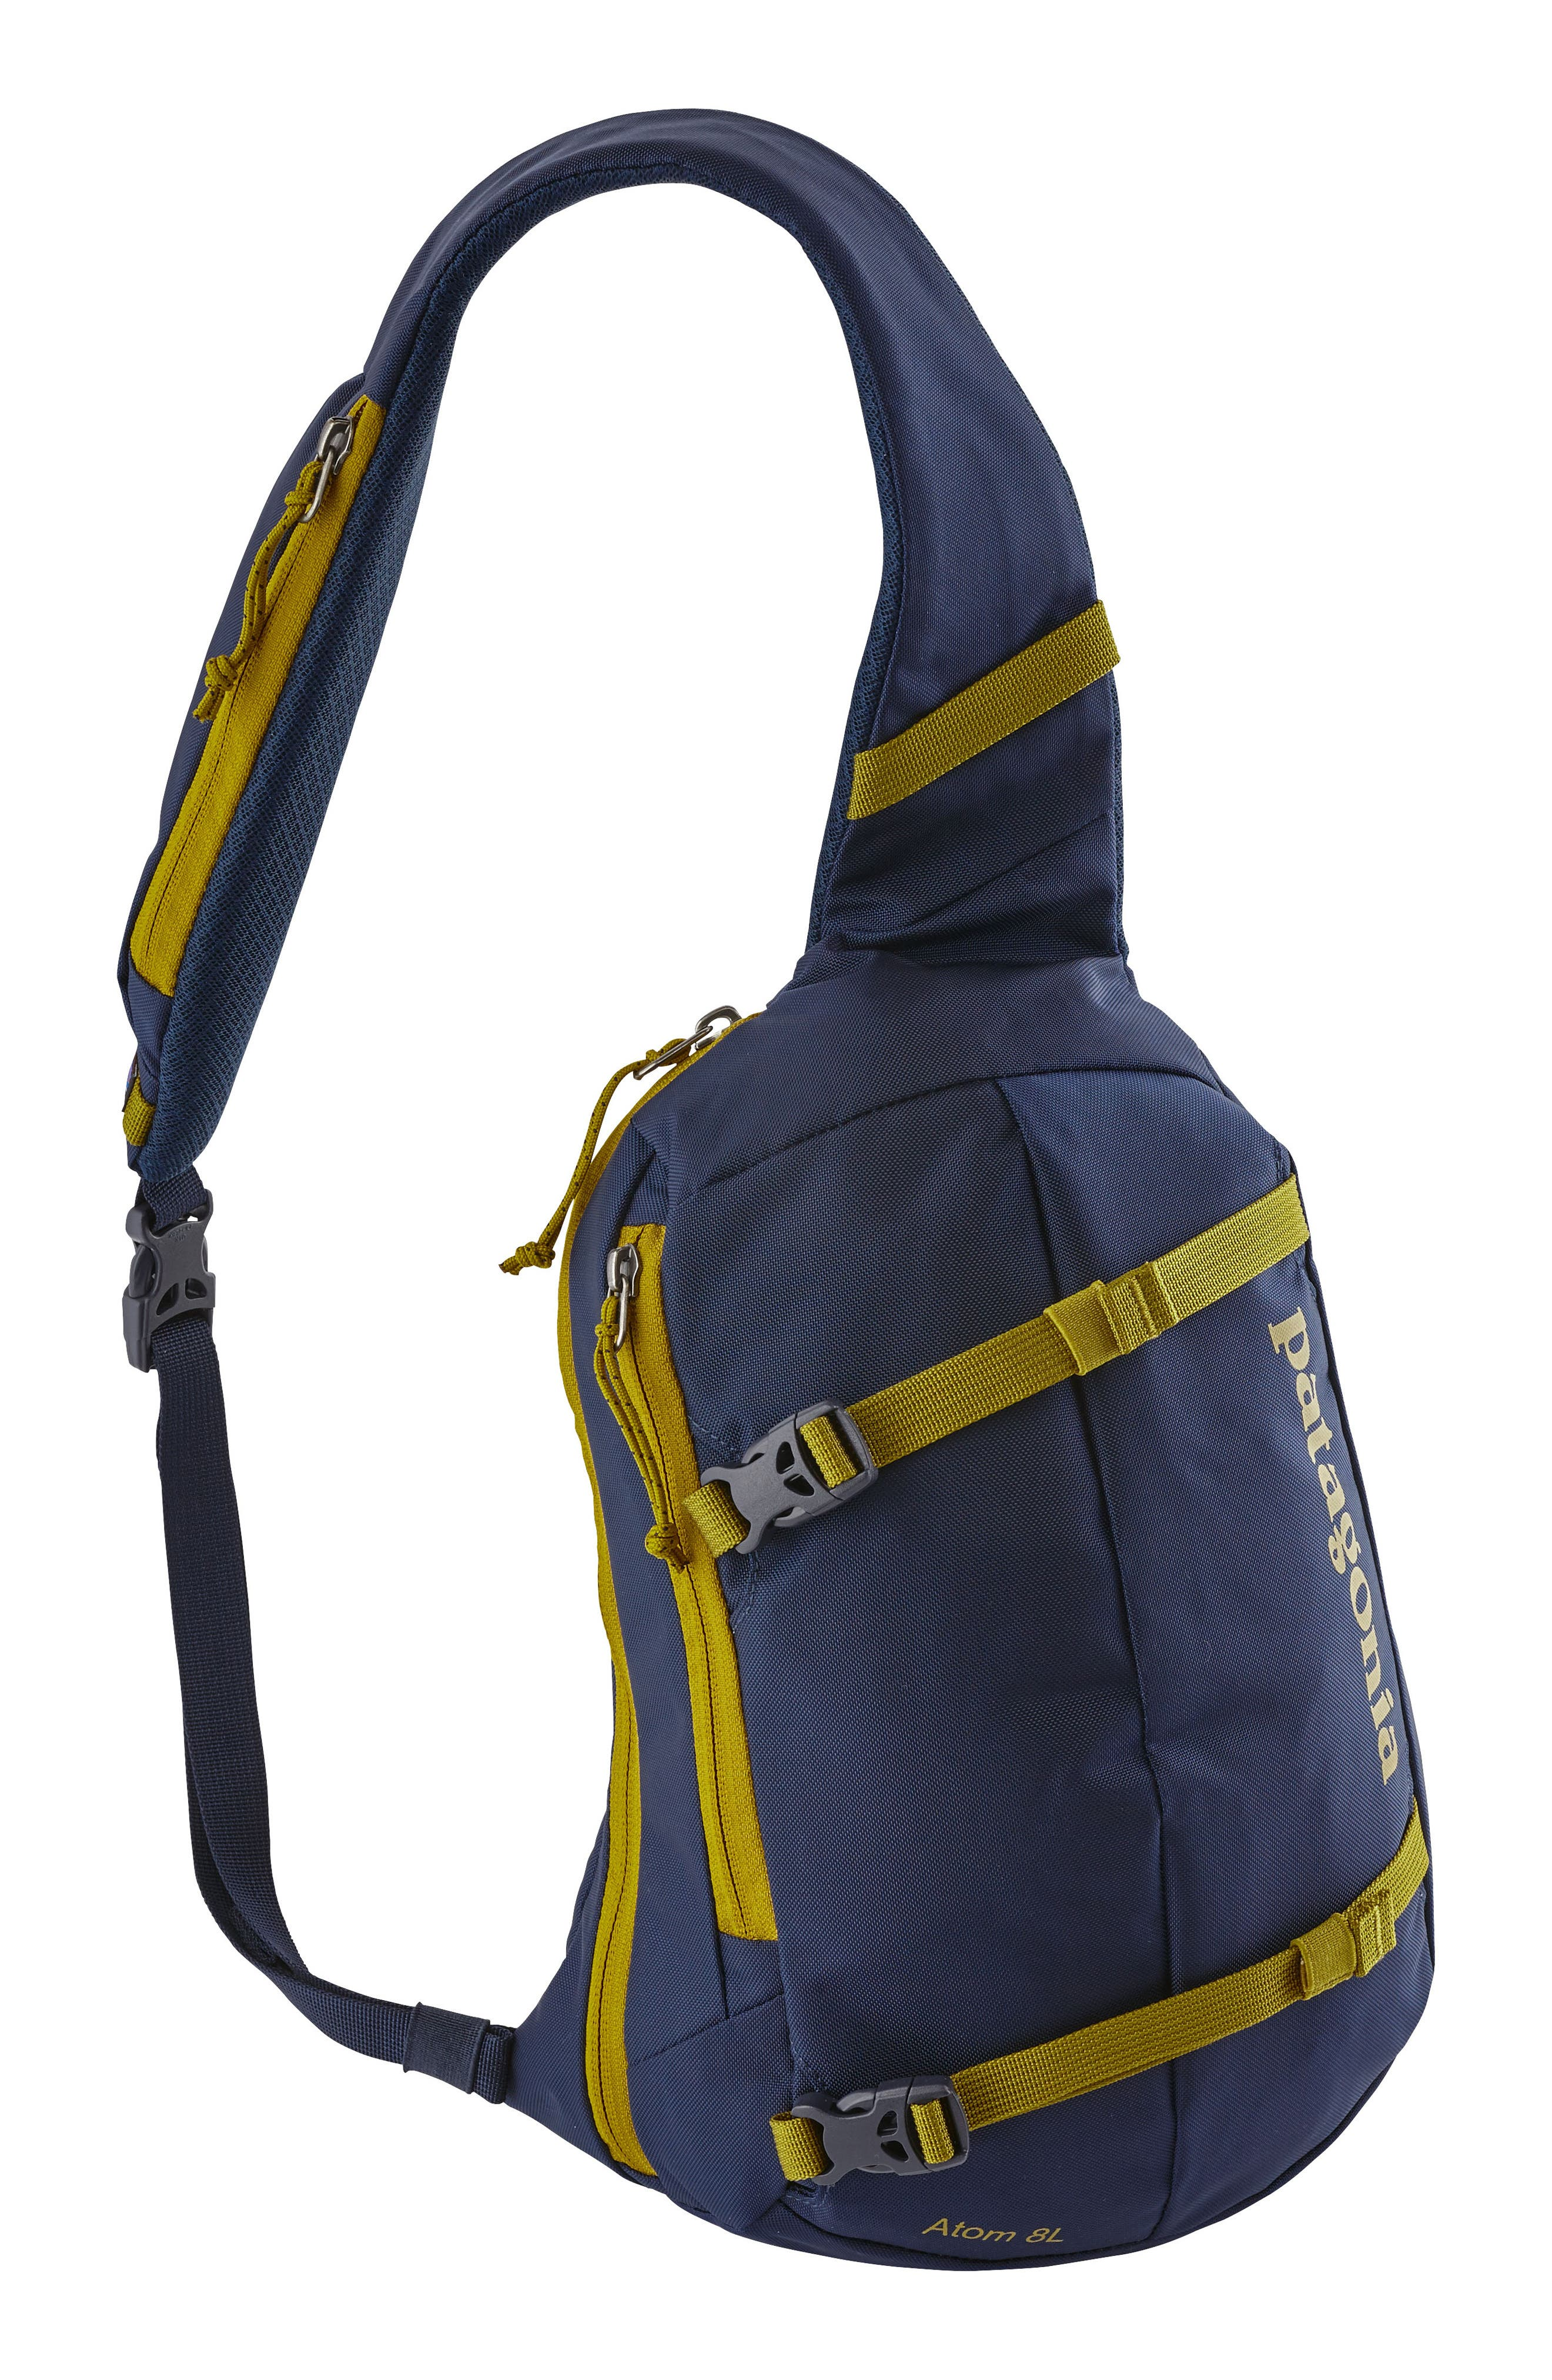 Atom 8L Sling Backpack,                         Main,                         color, CNY CLASSIC NAVY